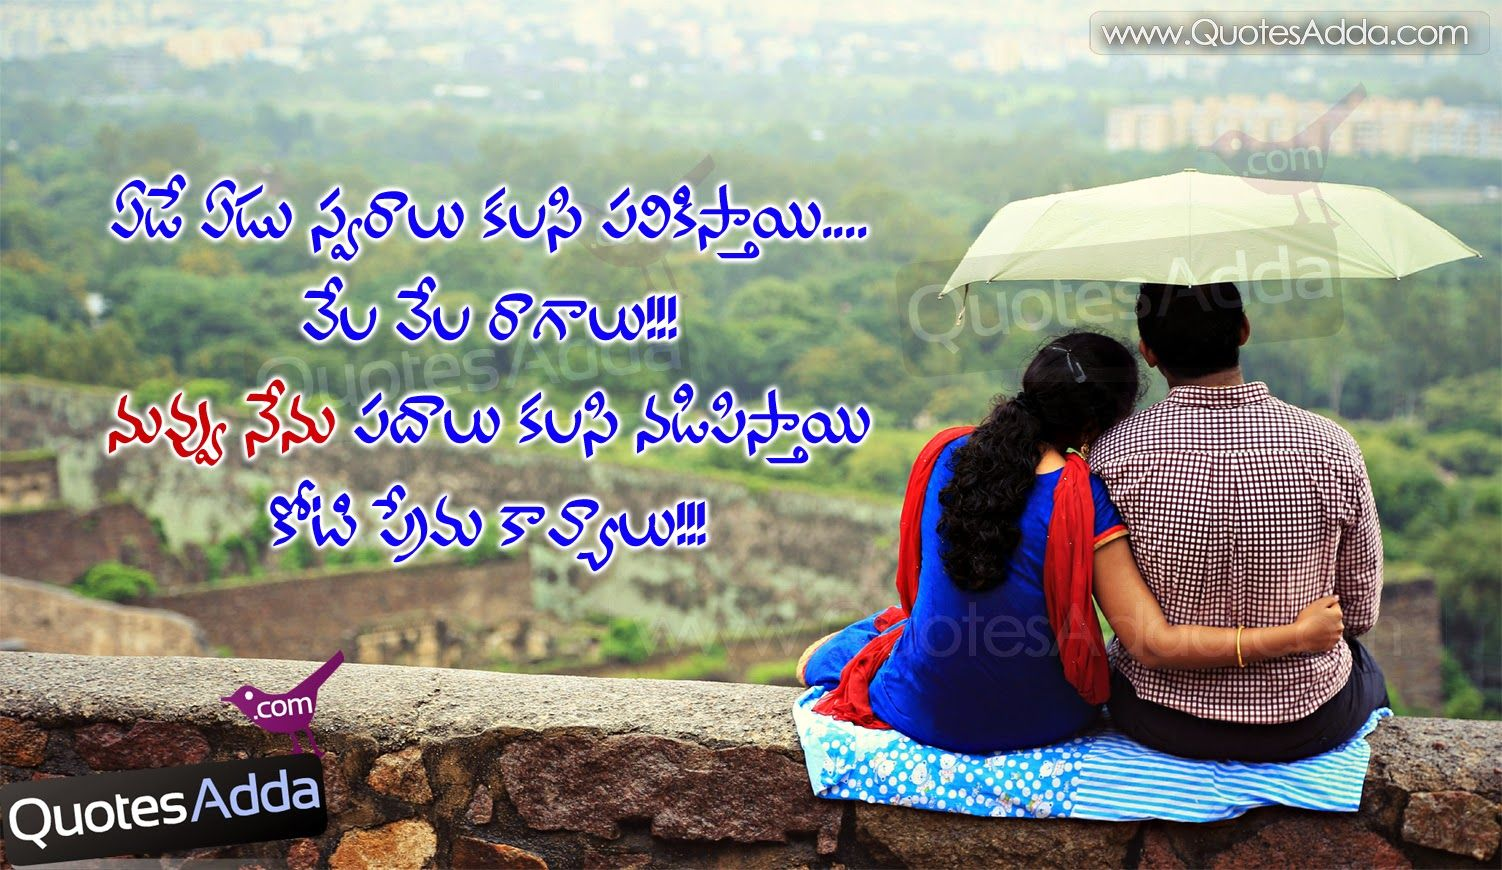 funny love proposal quotes Best Telugu Beautiful Love Quotations ...